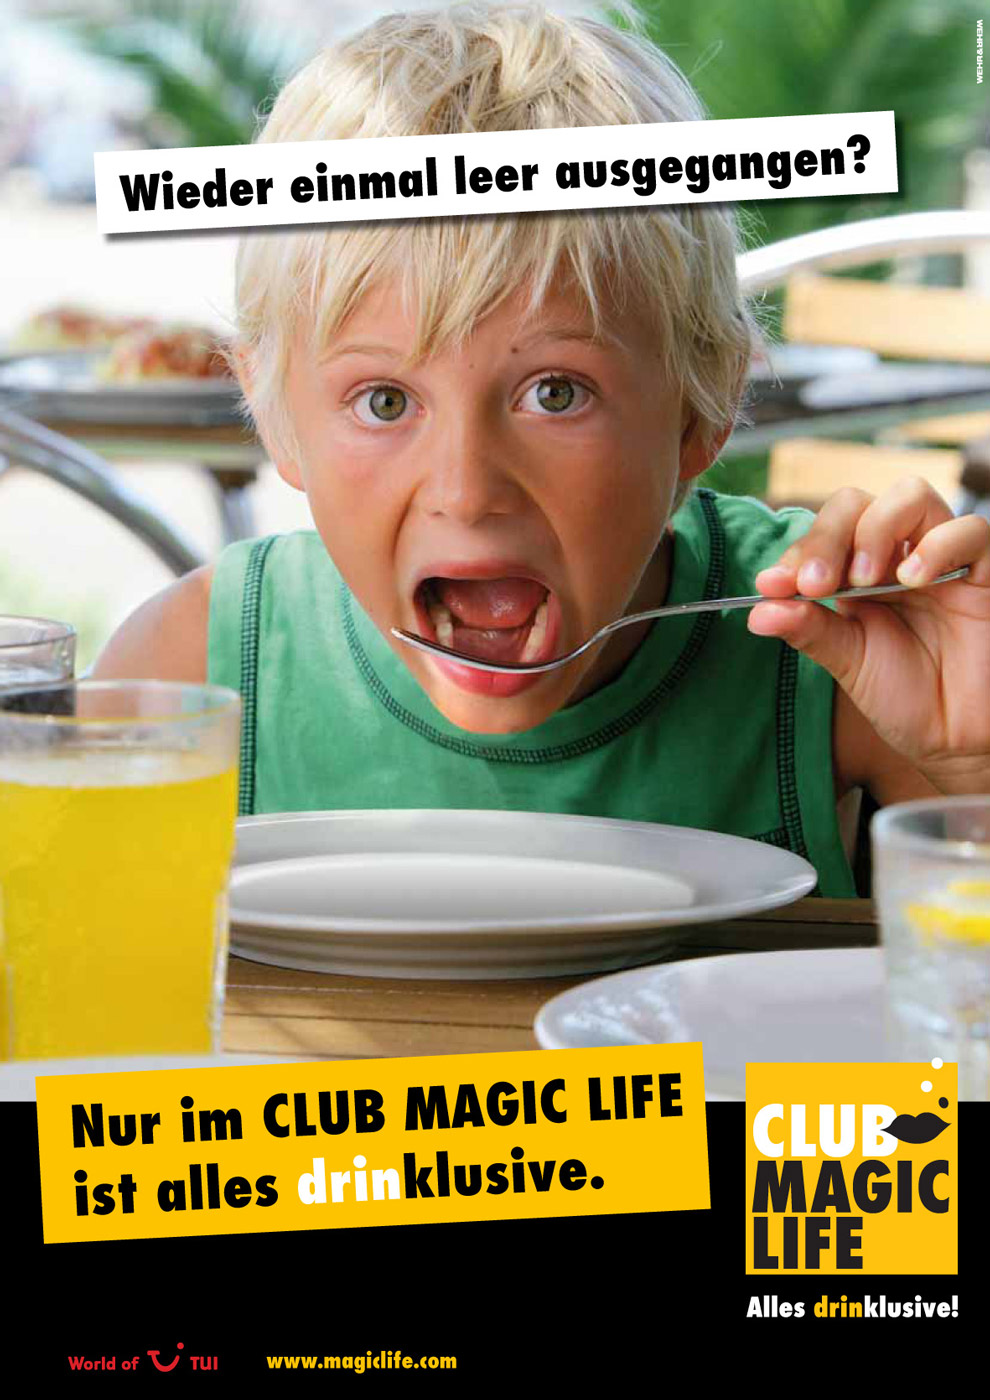 magiclife-kampagne-3